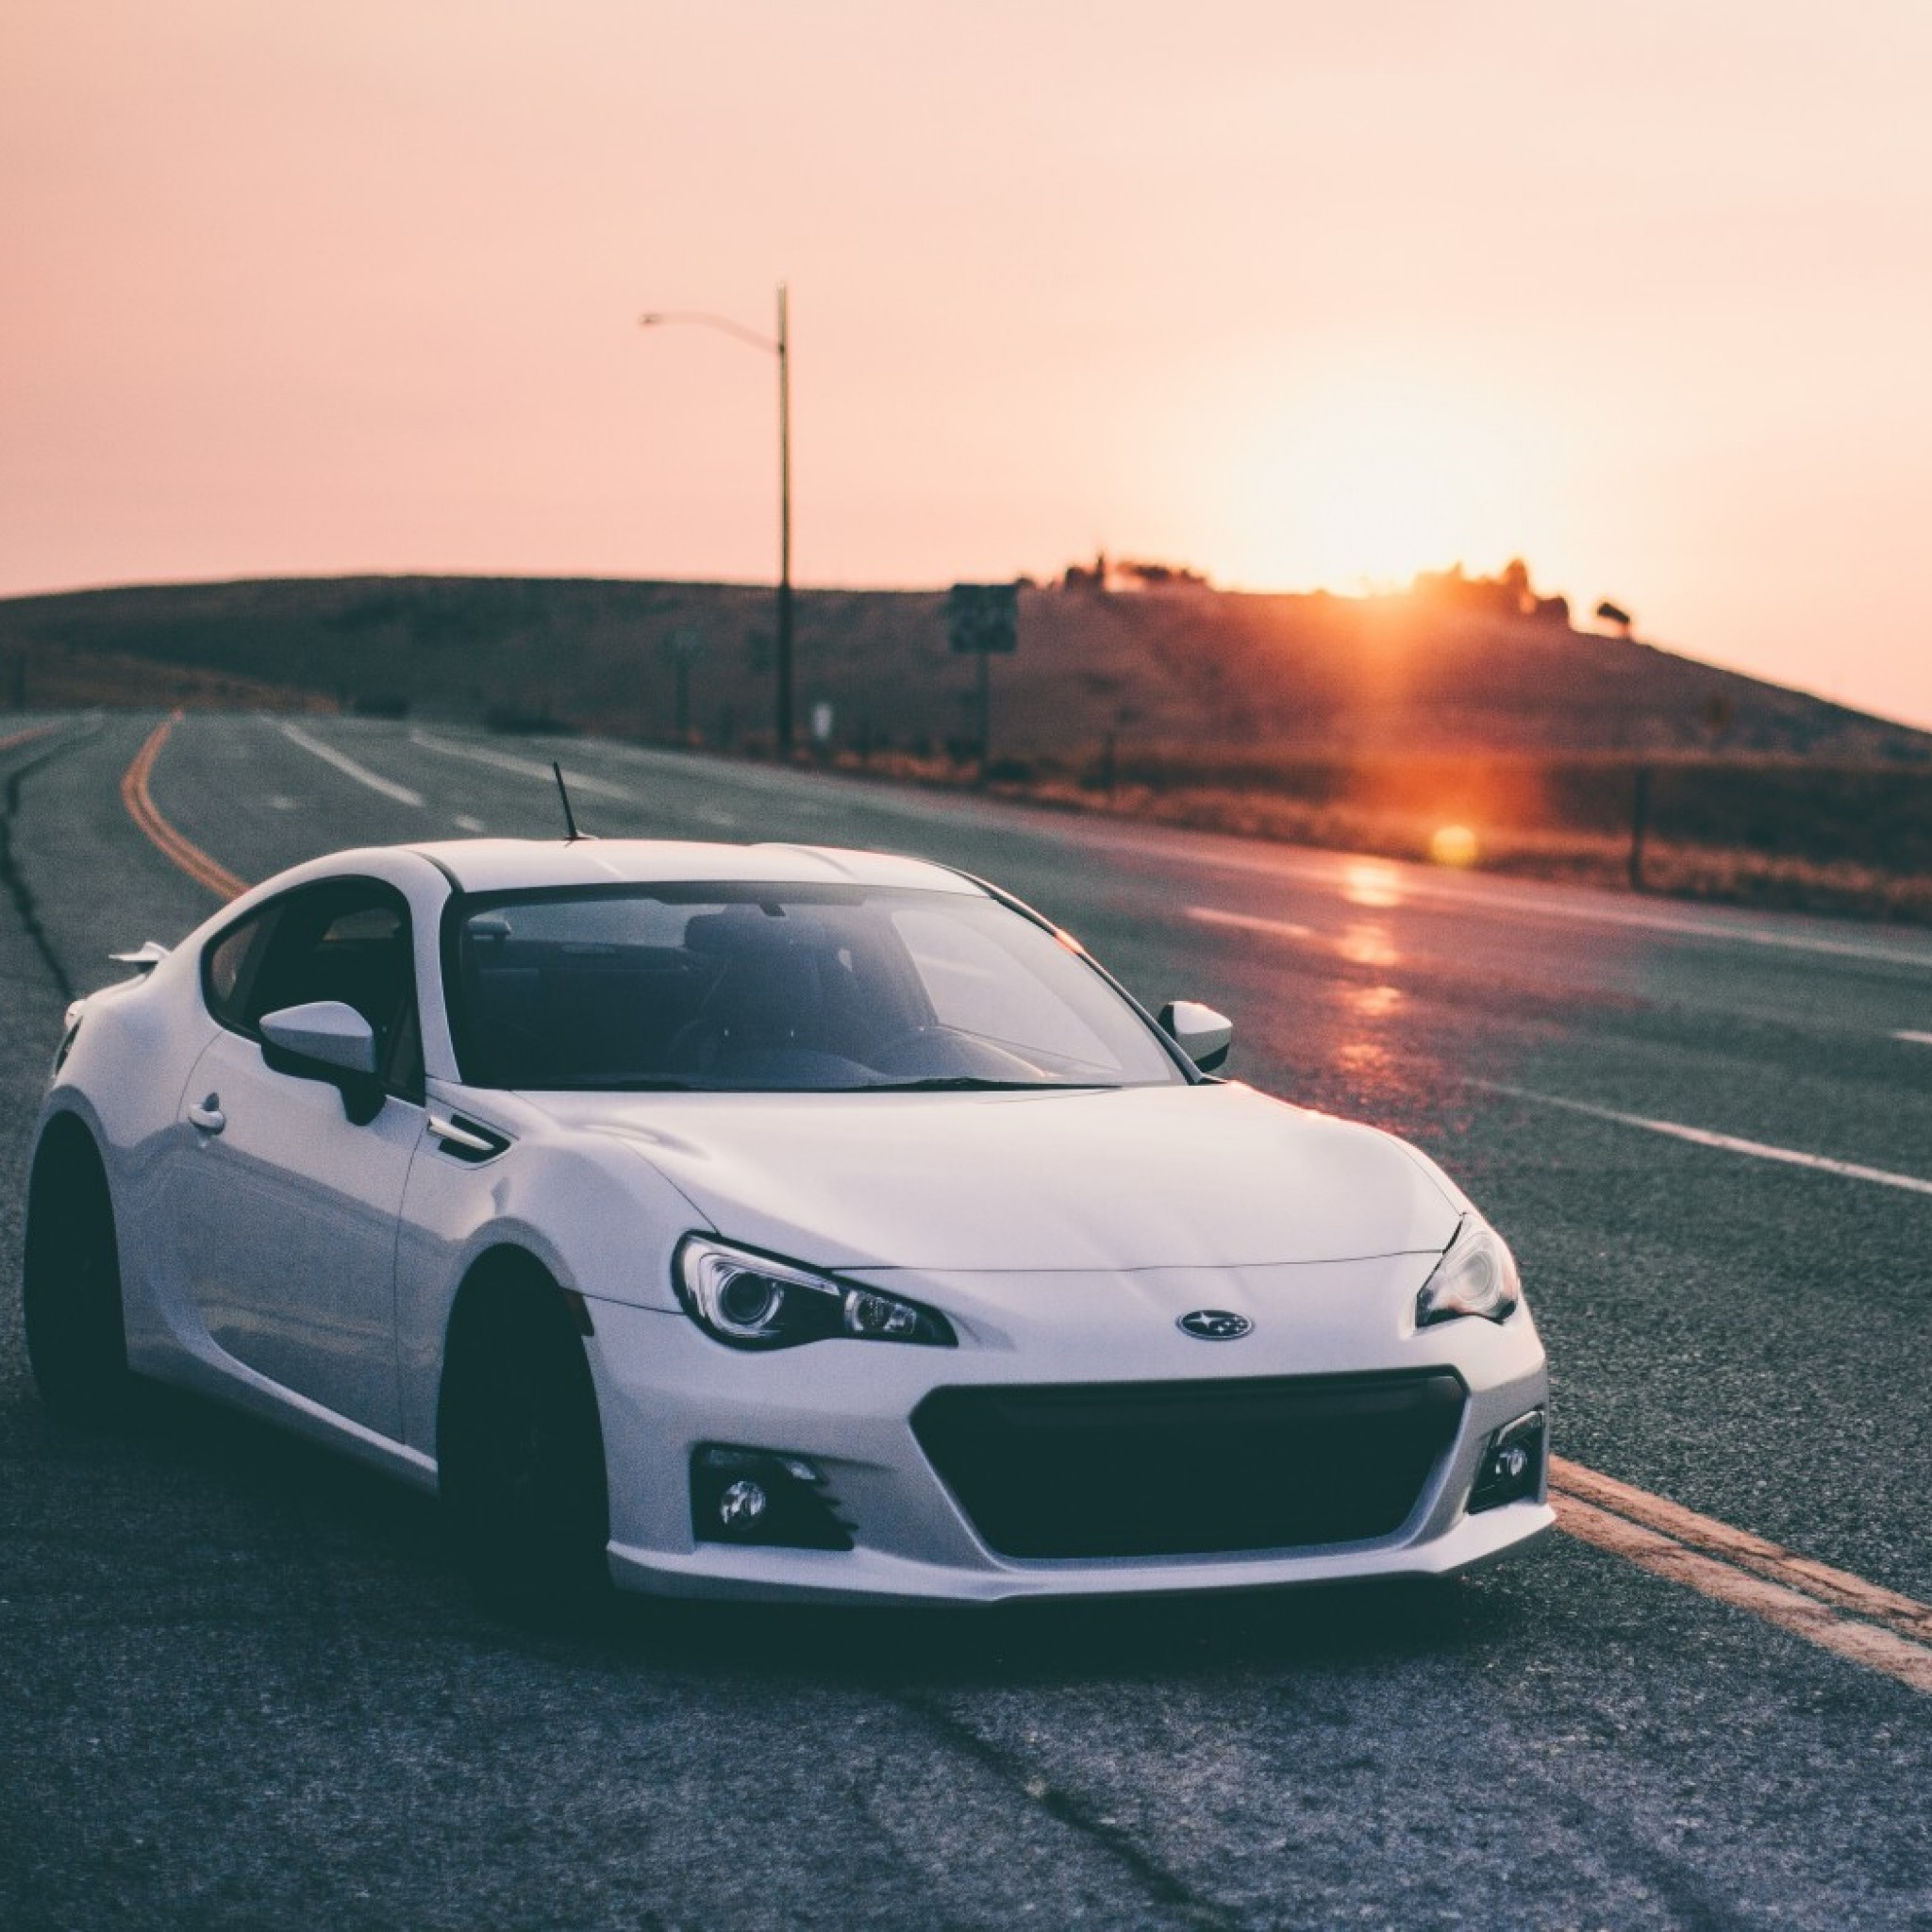 Subaru Brz IPhone Wallpaper (66+ Images